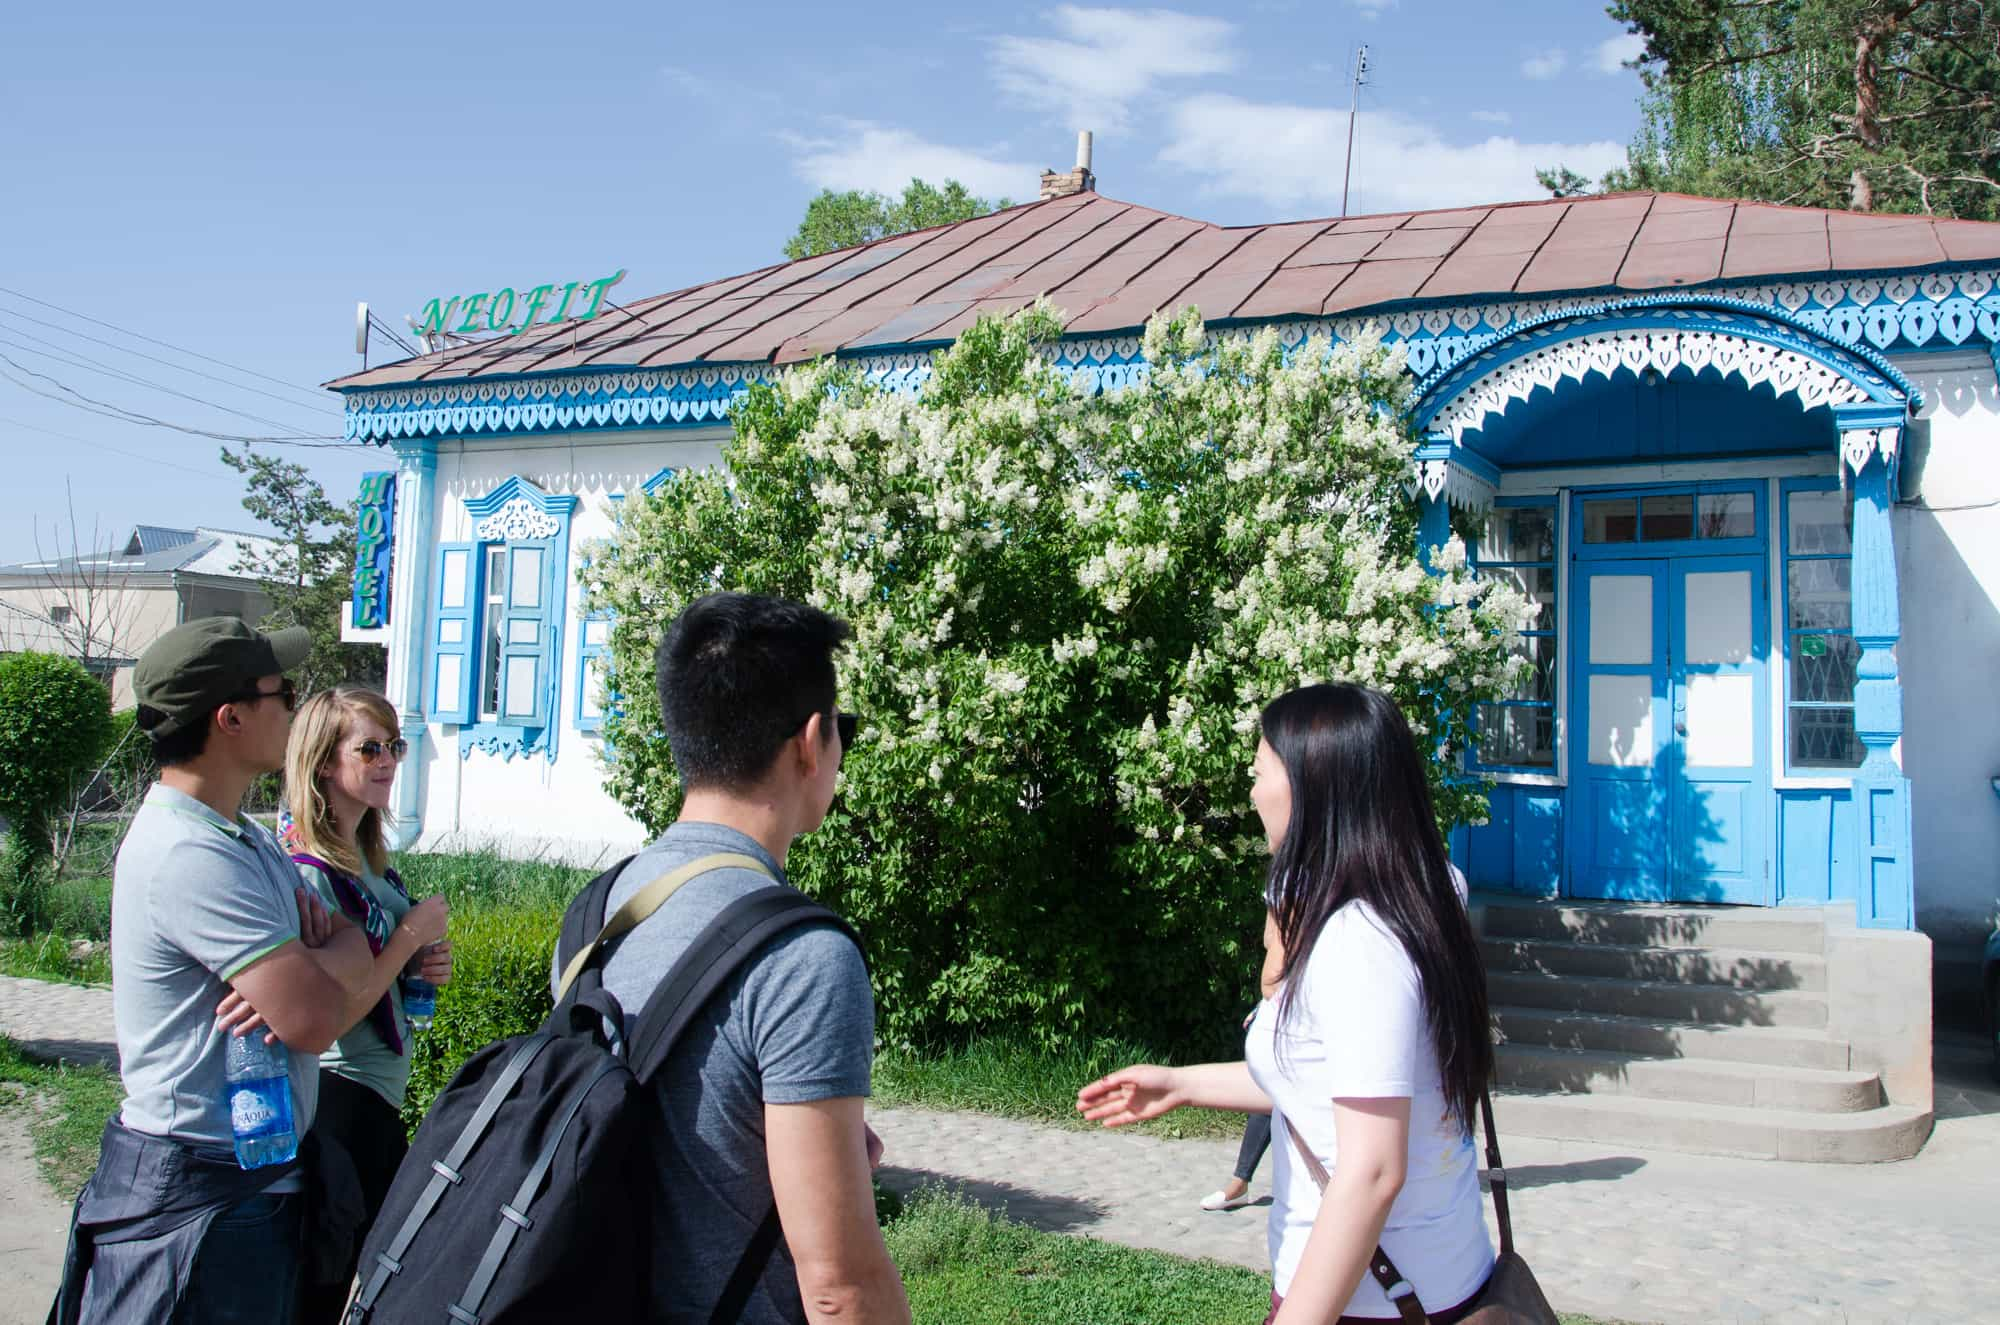 Karakol Walking Tour, Gingerbread Houses